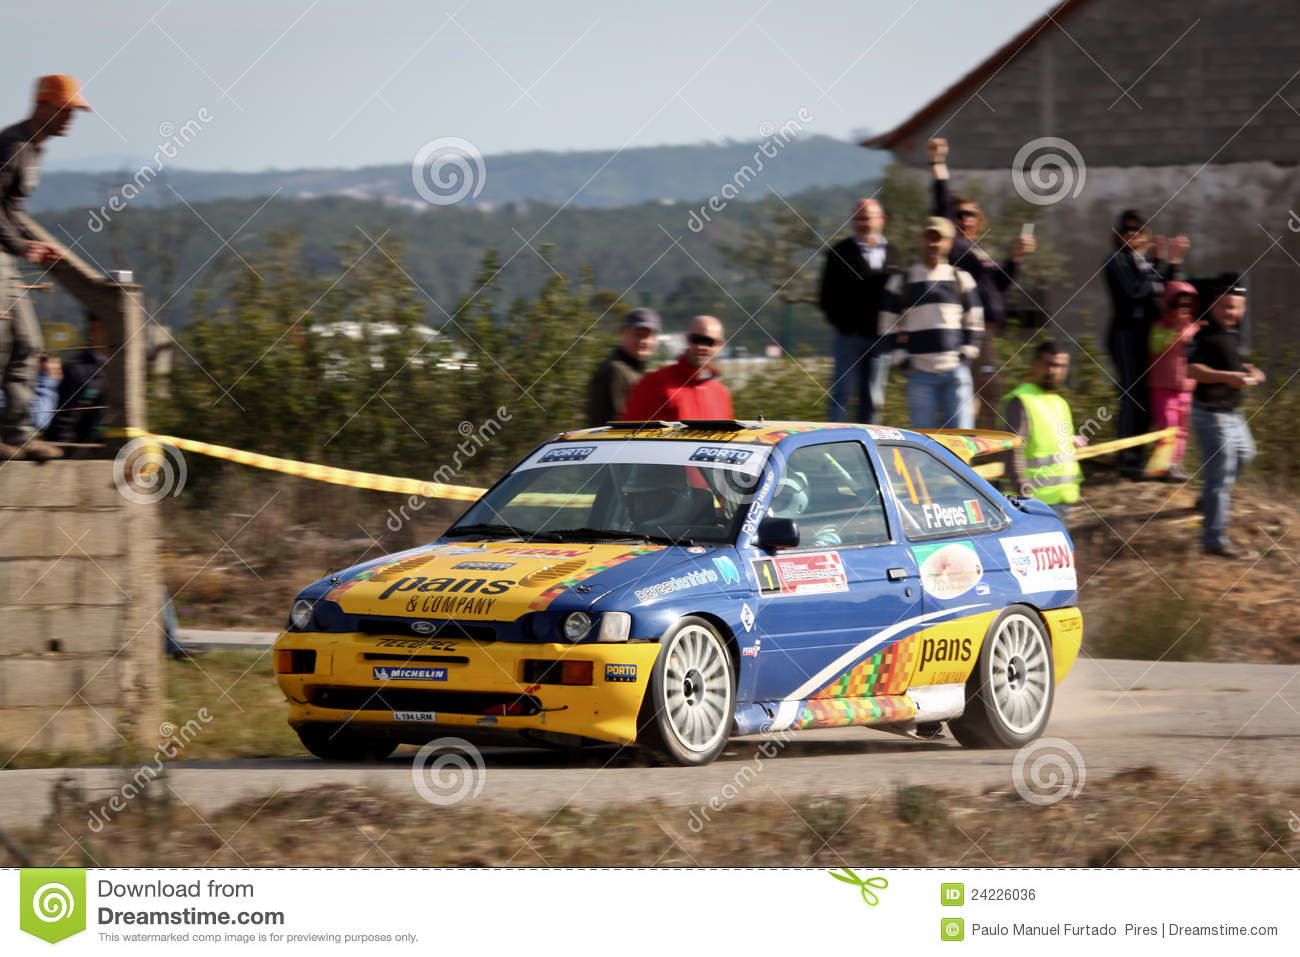 Editorial Stock Photo & Ford Escort Cosworth During Portuguese Open Rally Editorial Photo ... markmcfarlin.com